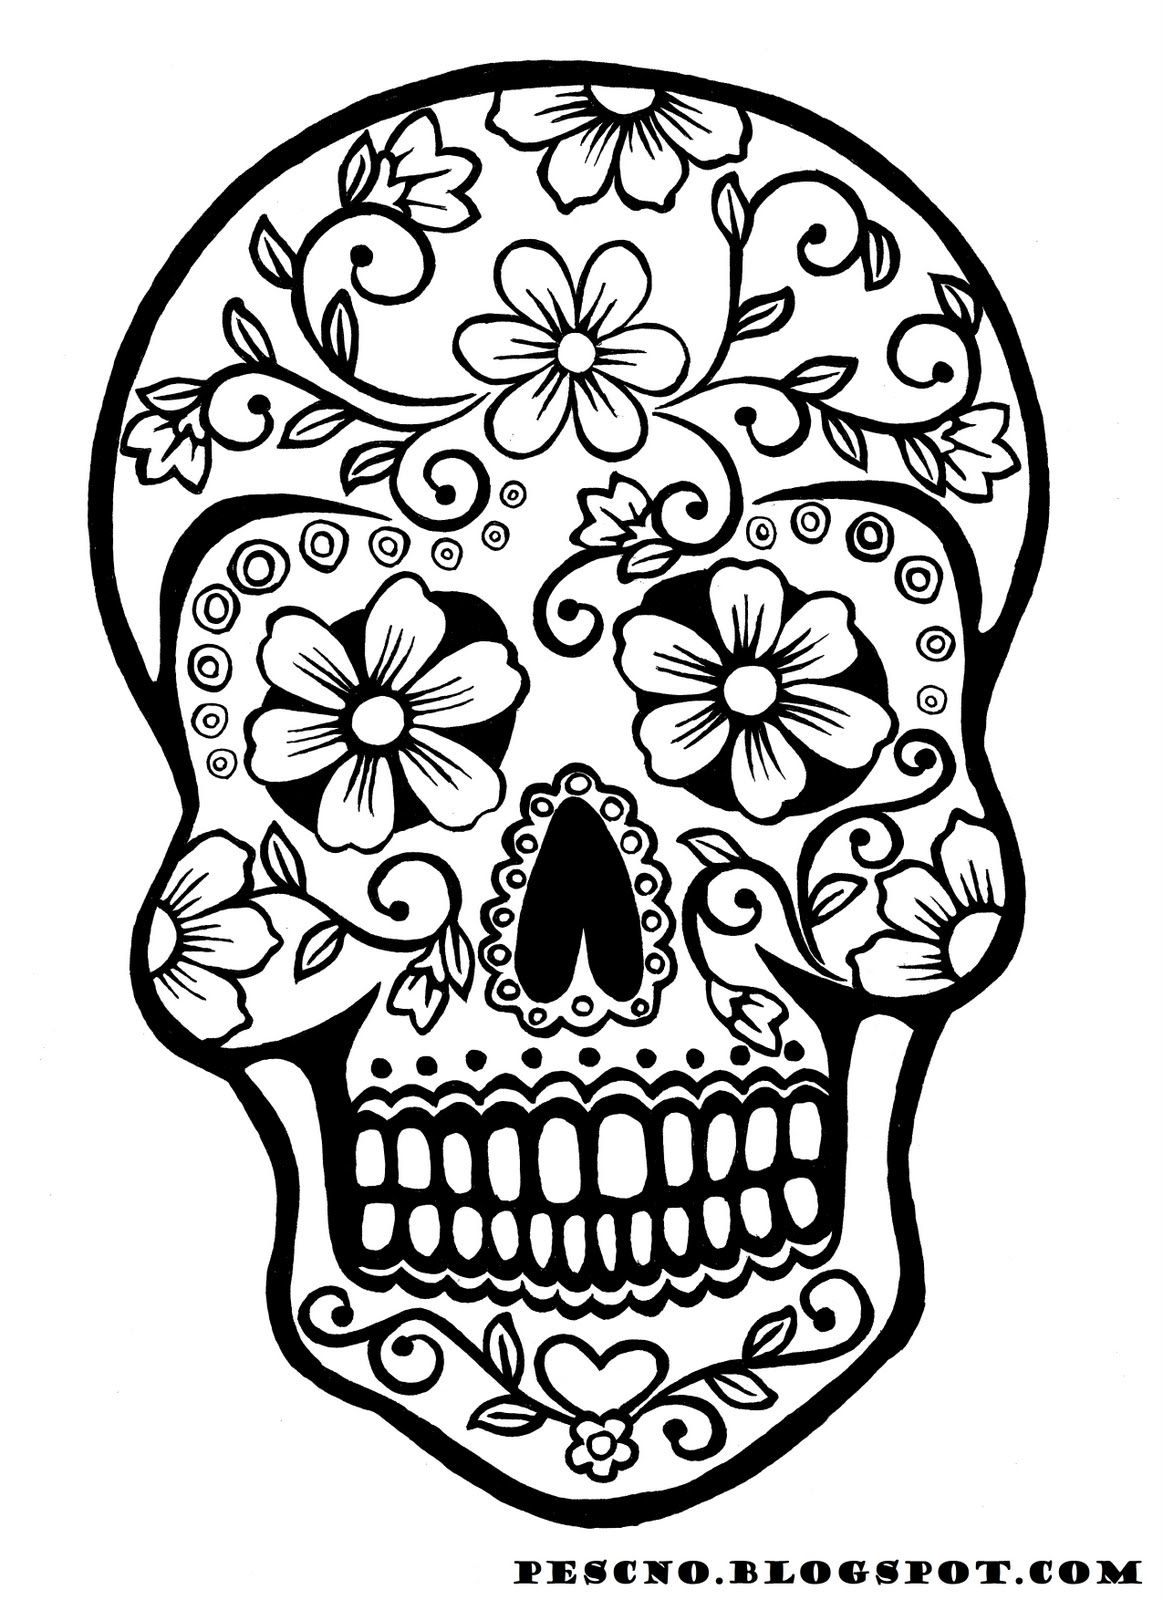 sugar skulls coloring pages sugar skull coloring pages | Tryk på billedet for en stor udgave  sugar skulls coloring pages